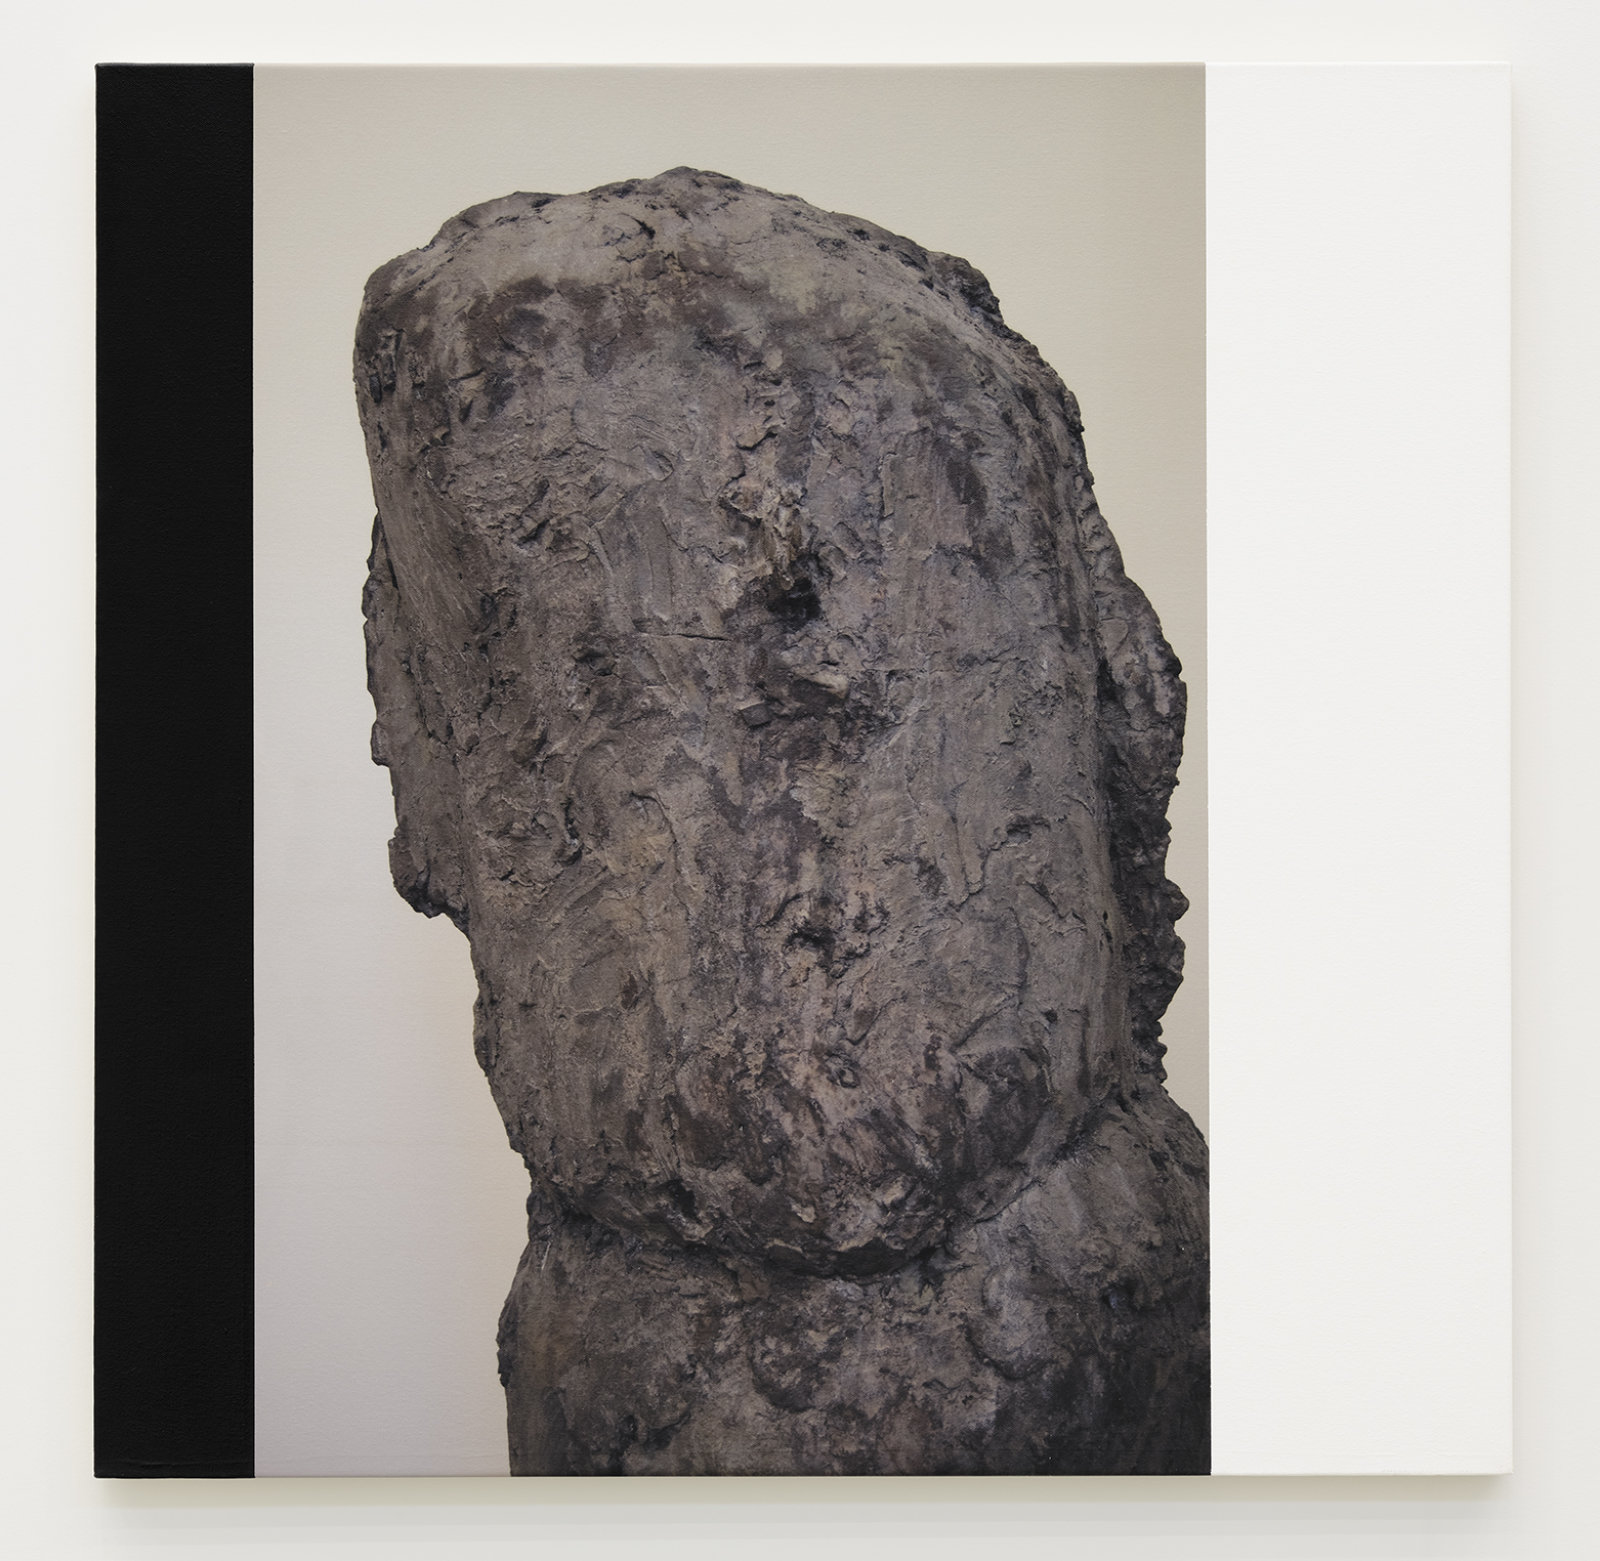 Ian Wallace, Untitled (The Hans Josephsohn Series), 2009, photolaminate and acrylic on canvas, triptych, each 36 x 36 in. (92 x 92 cm) by Ian Wallace